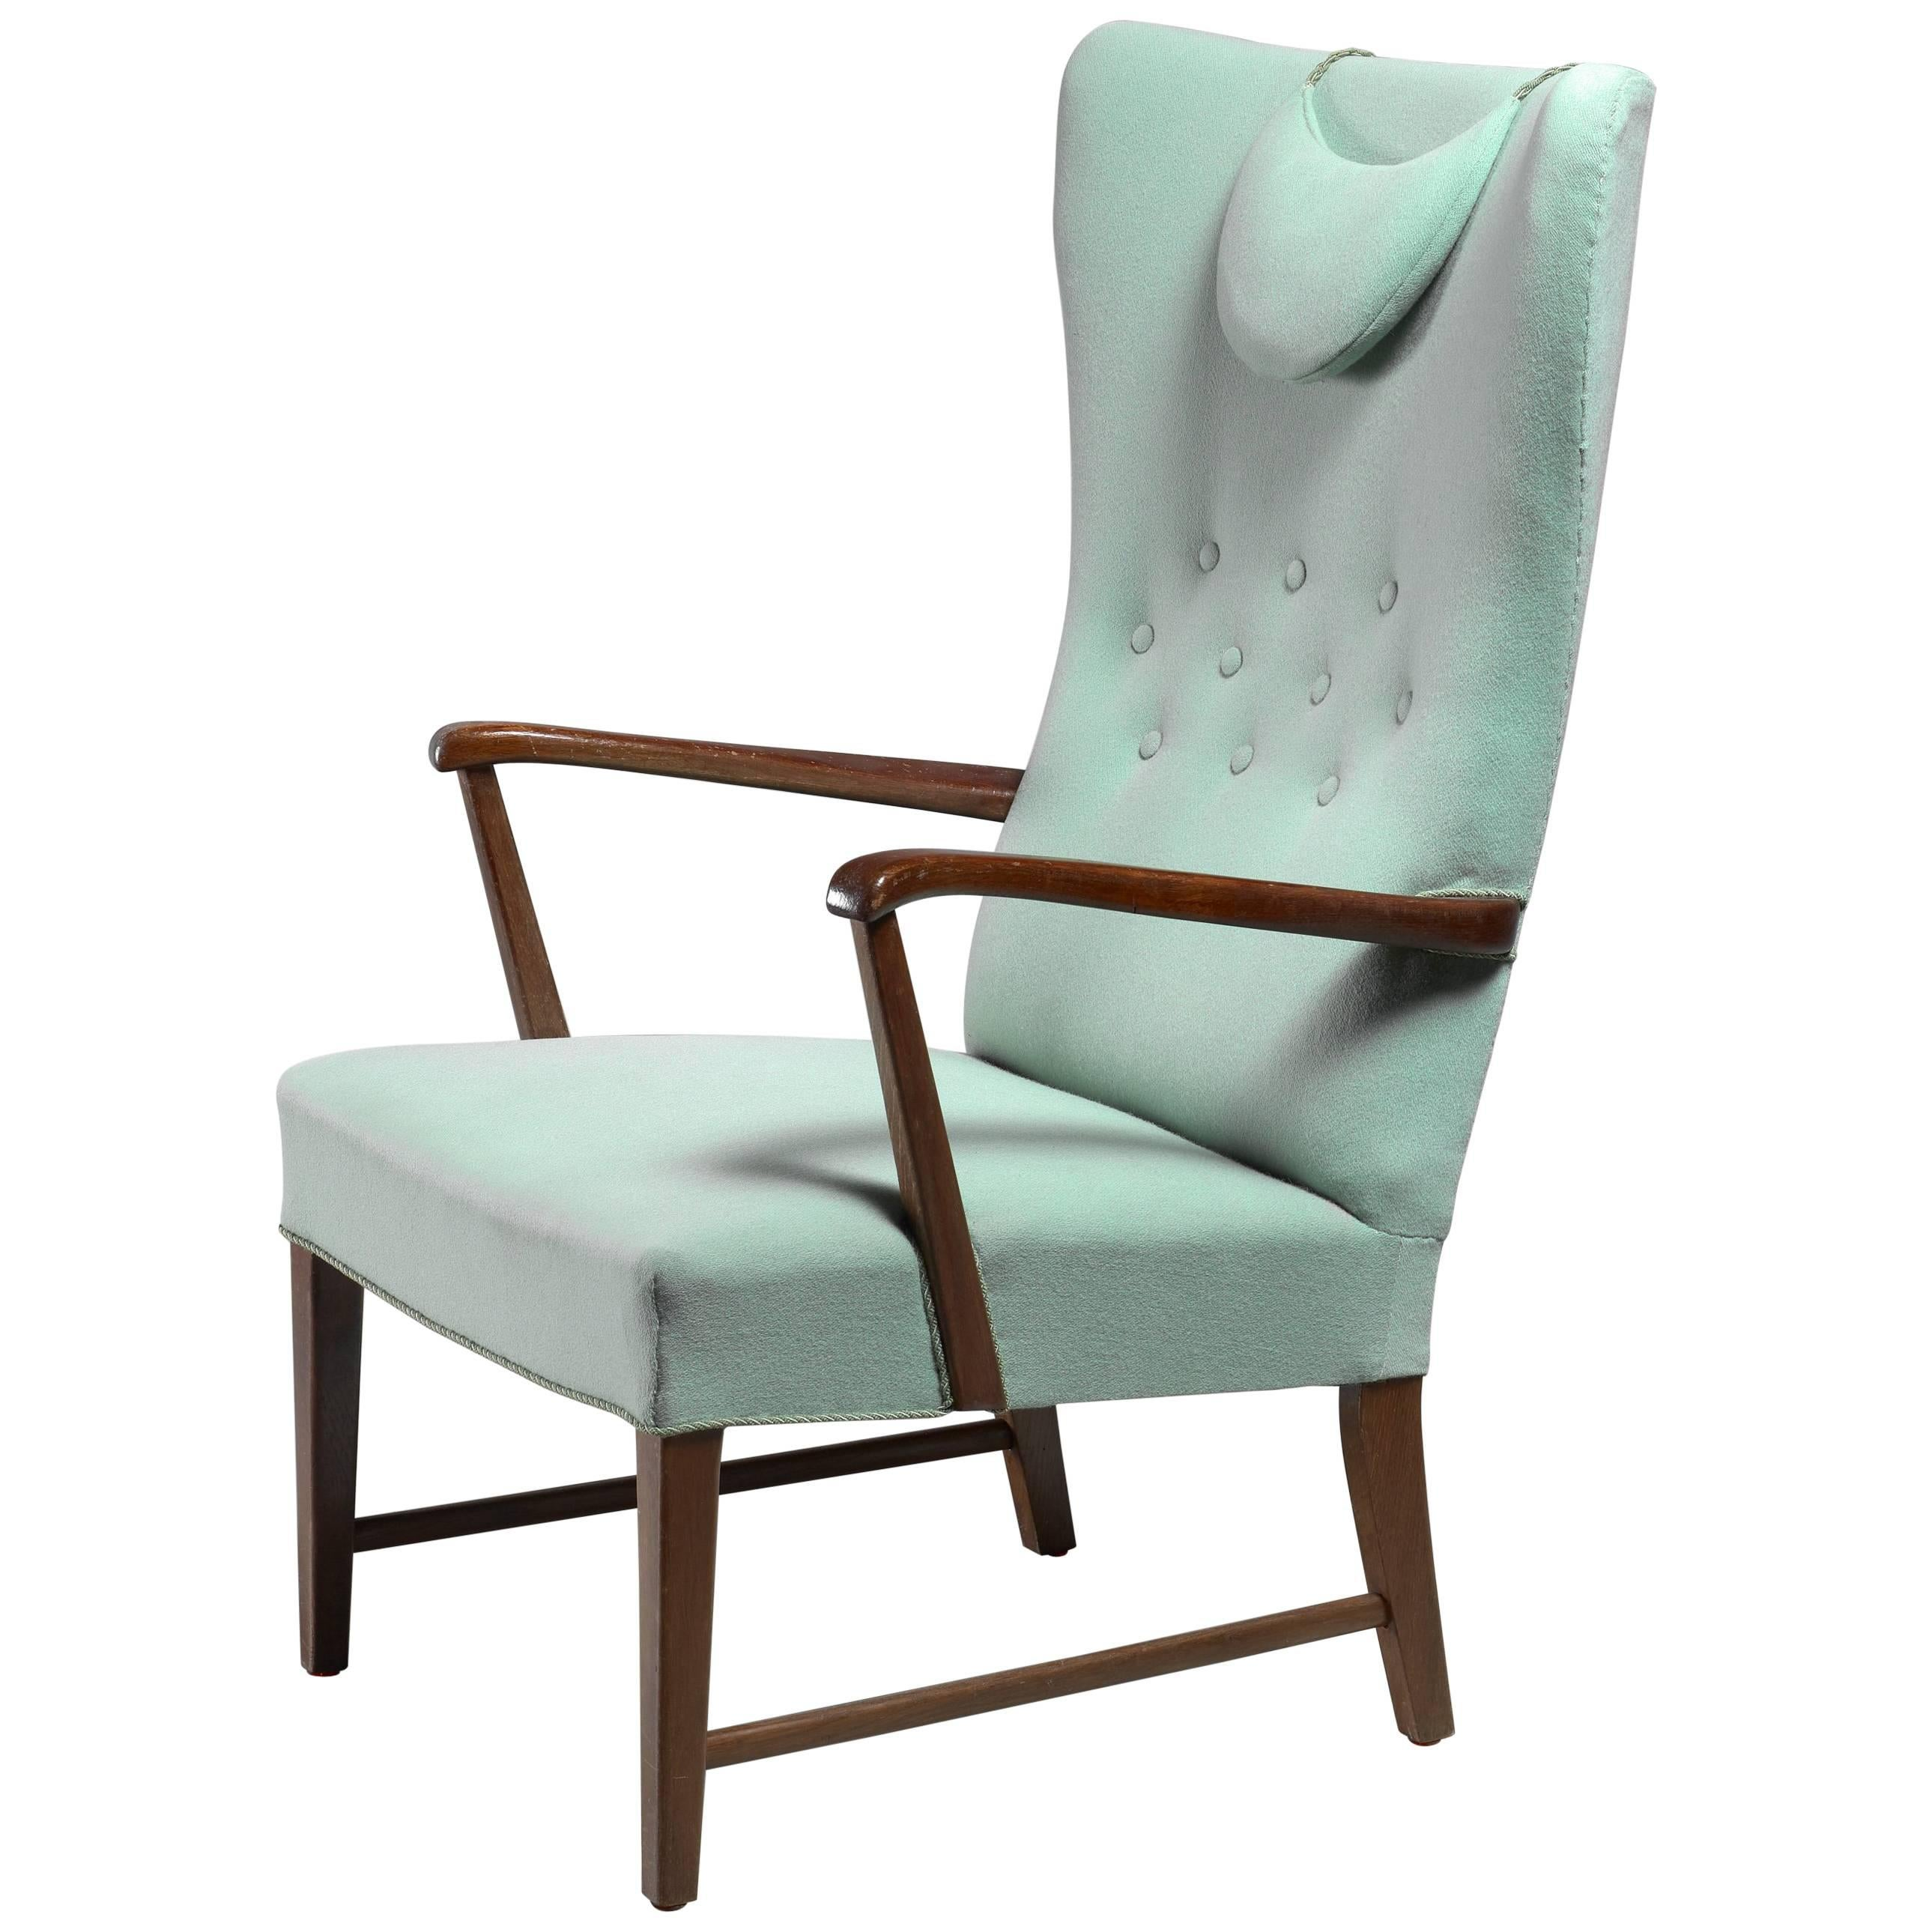 Danish High Back Lounge Chair with Mint Green Wool Upholstery, 1940s